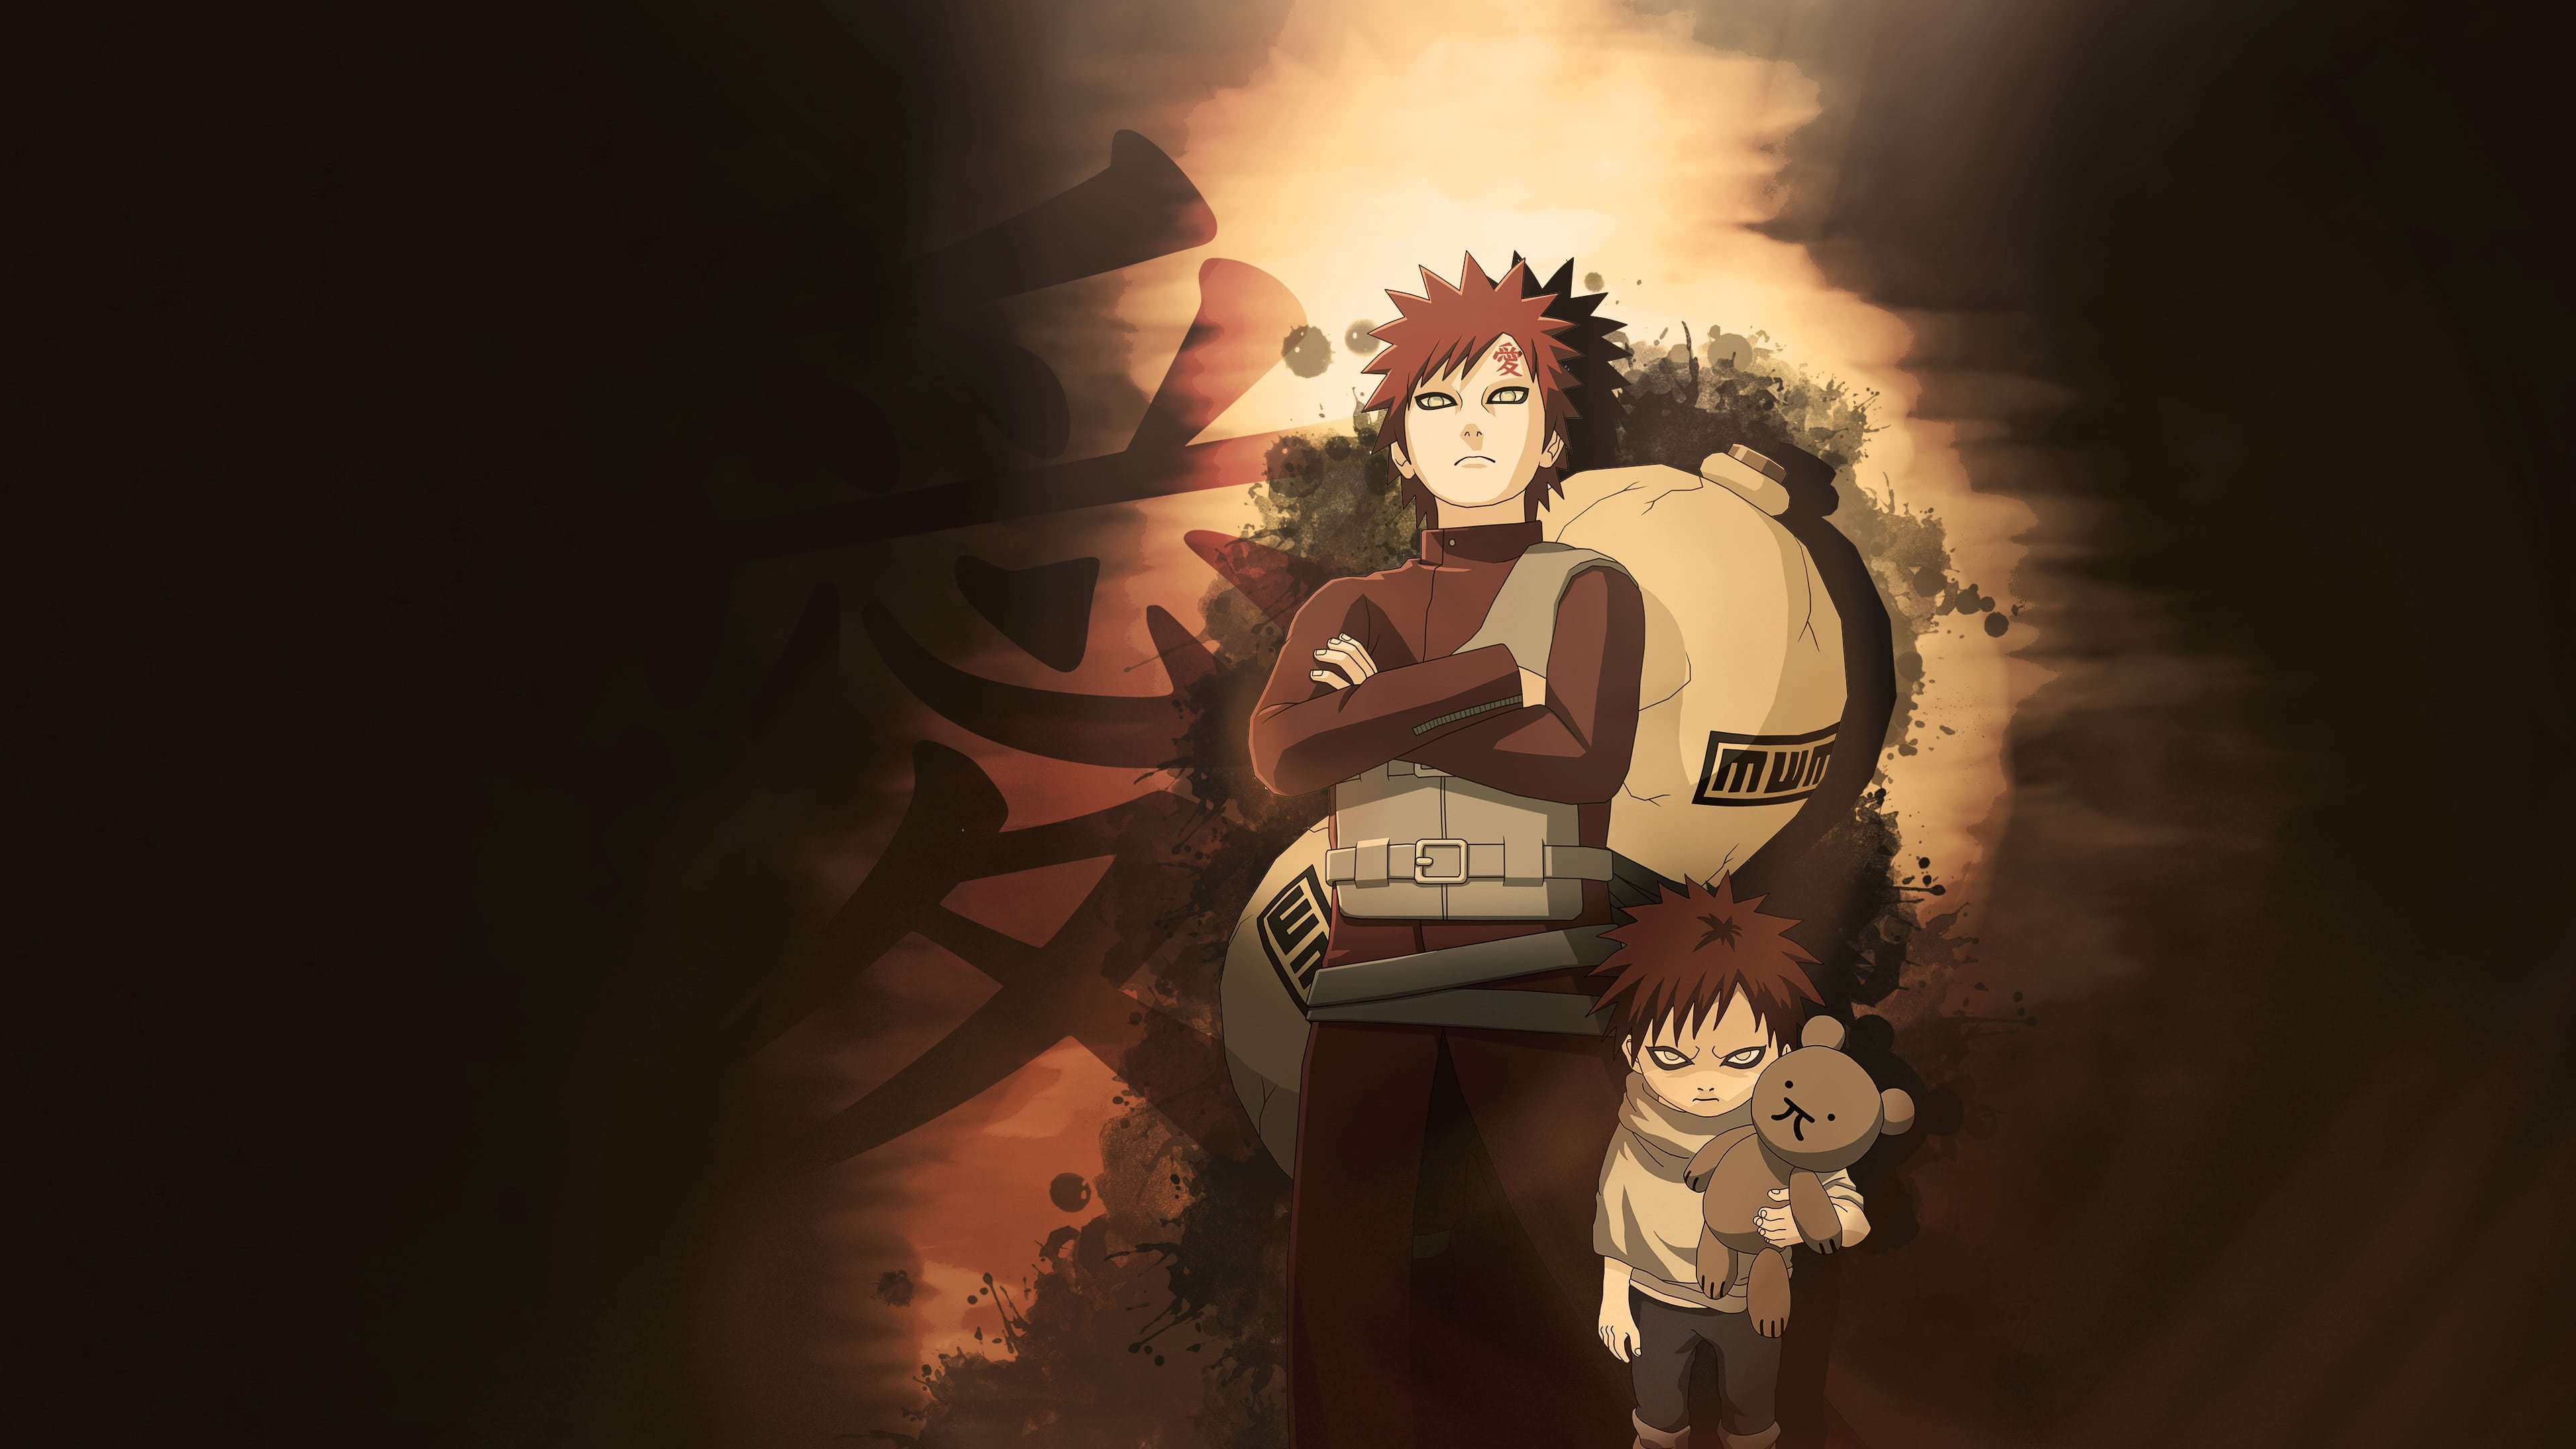 Naruto Gaara Uhd 4k Wallpaper Shippuden Ultimate Ninja Storm 2 2929635 Hd Wallpaper Backgrounds Download